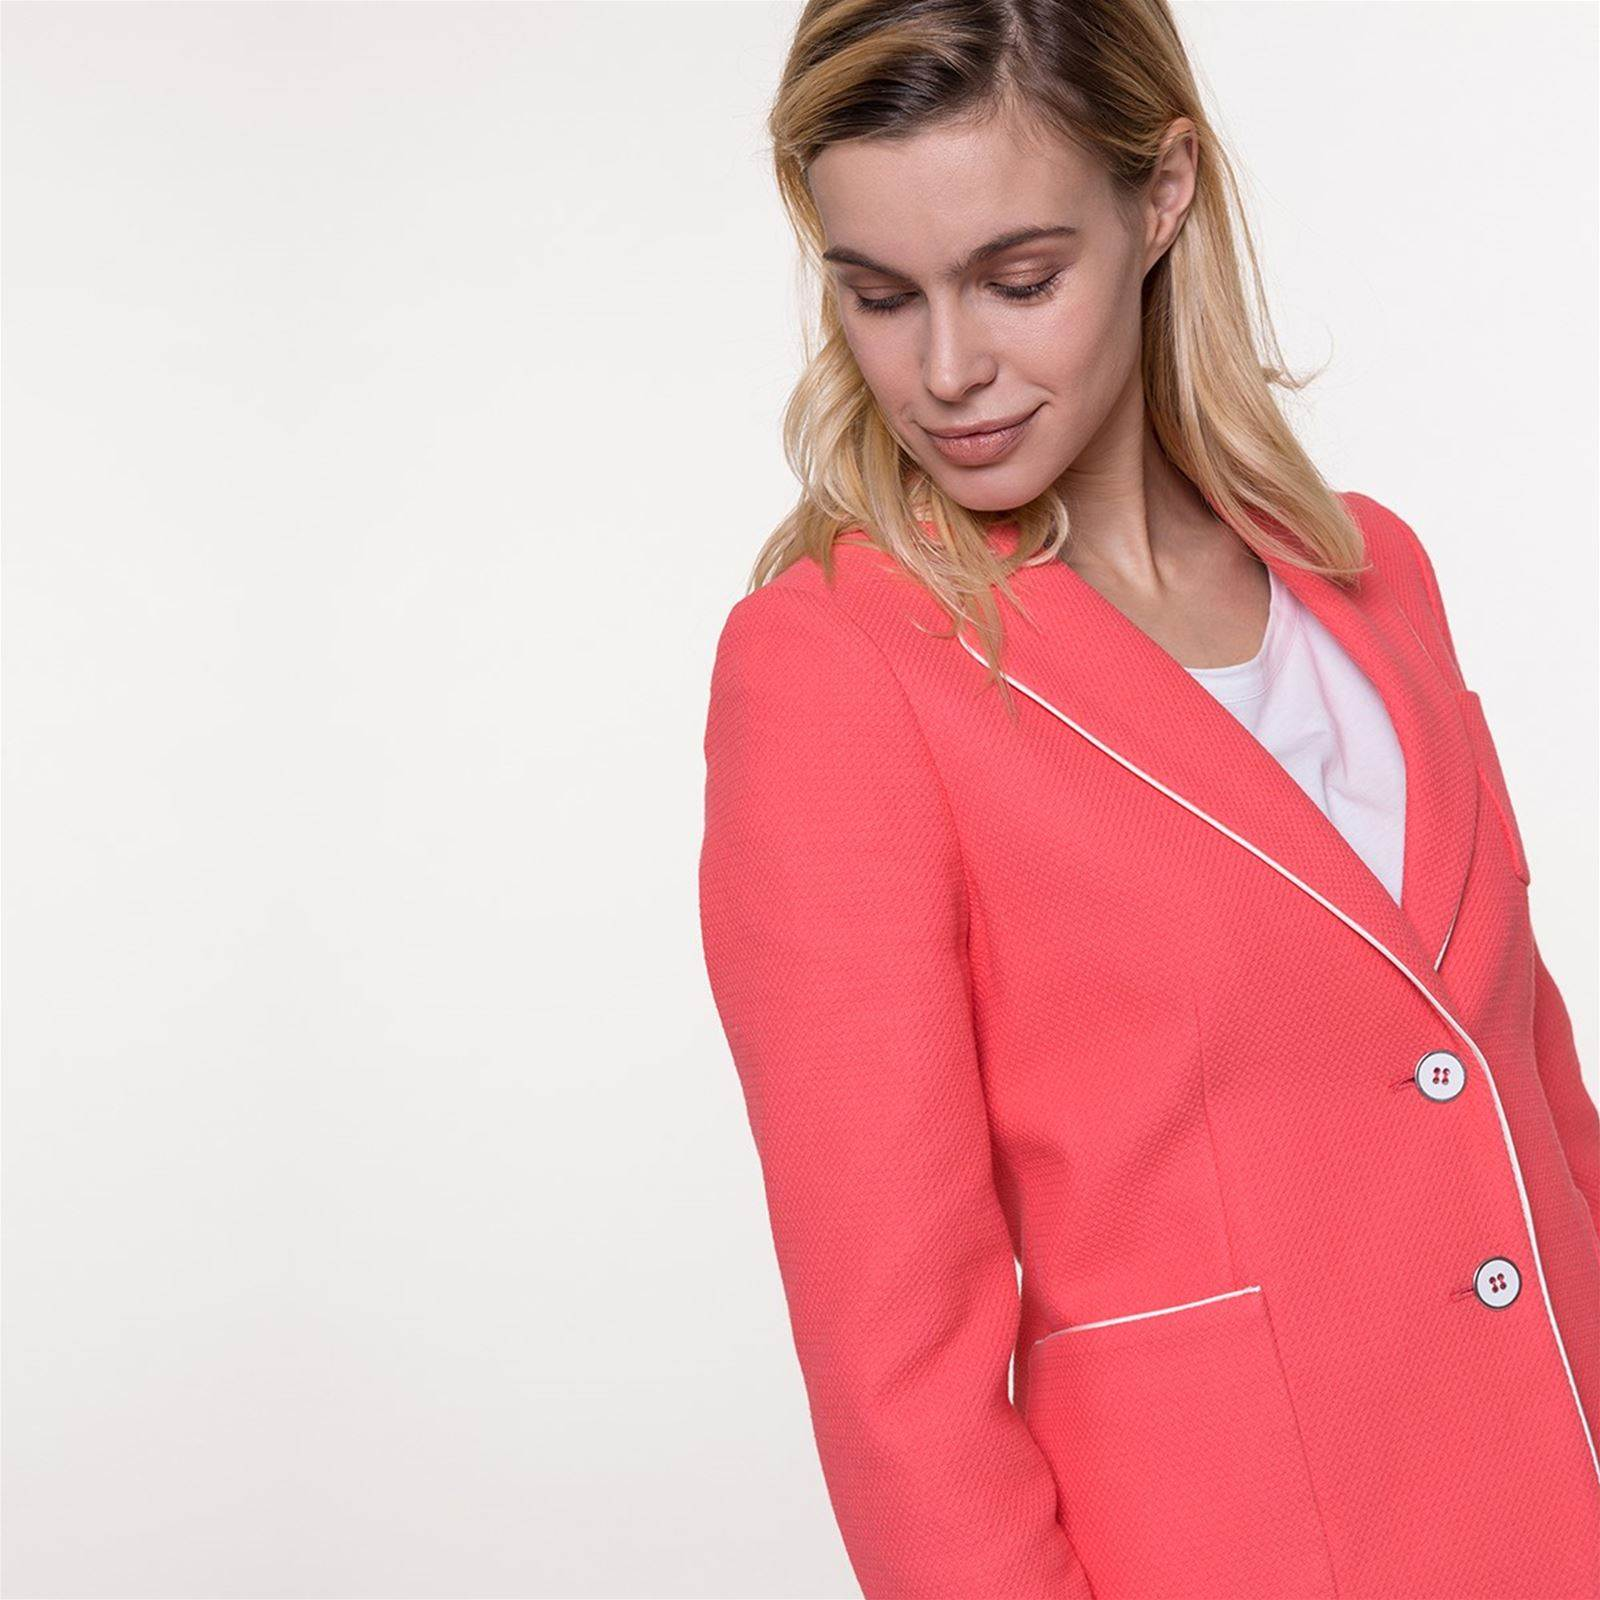 Coton Souple Coat Trench And Piqué Corail De En Brandalley Veste wvwYnxq0